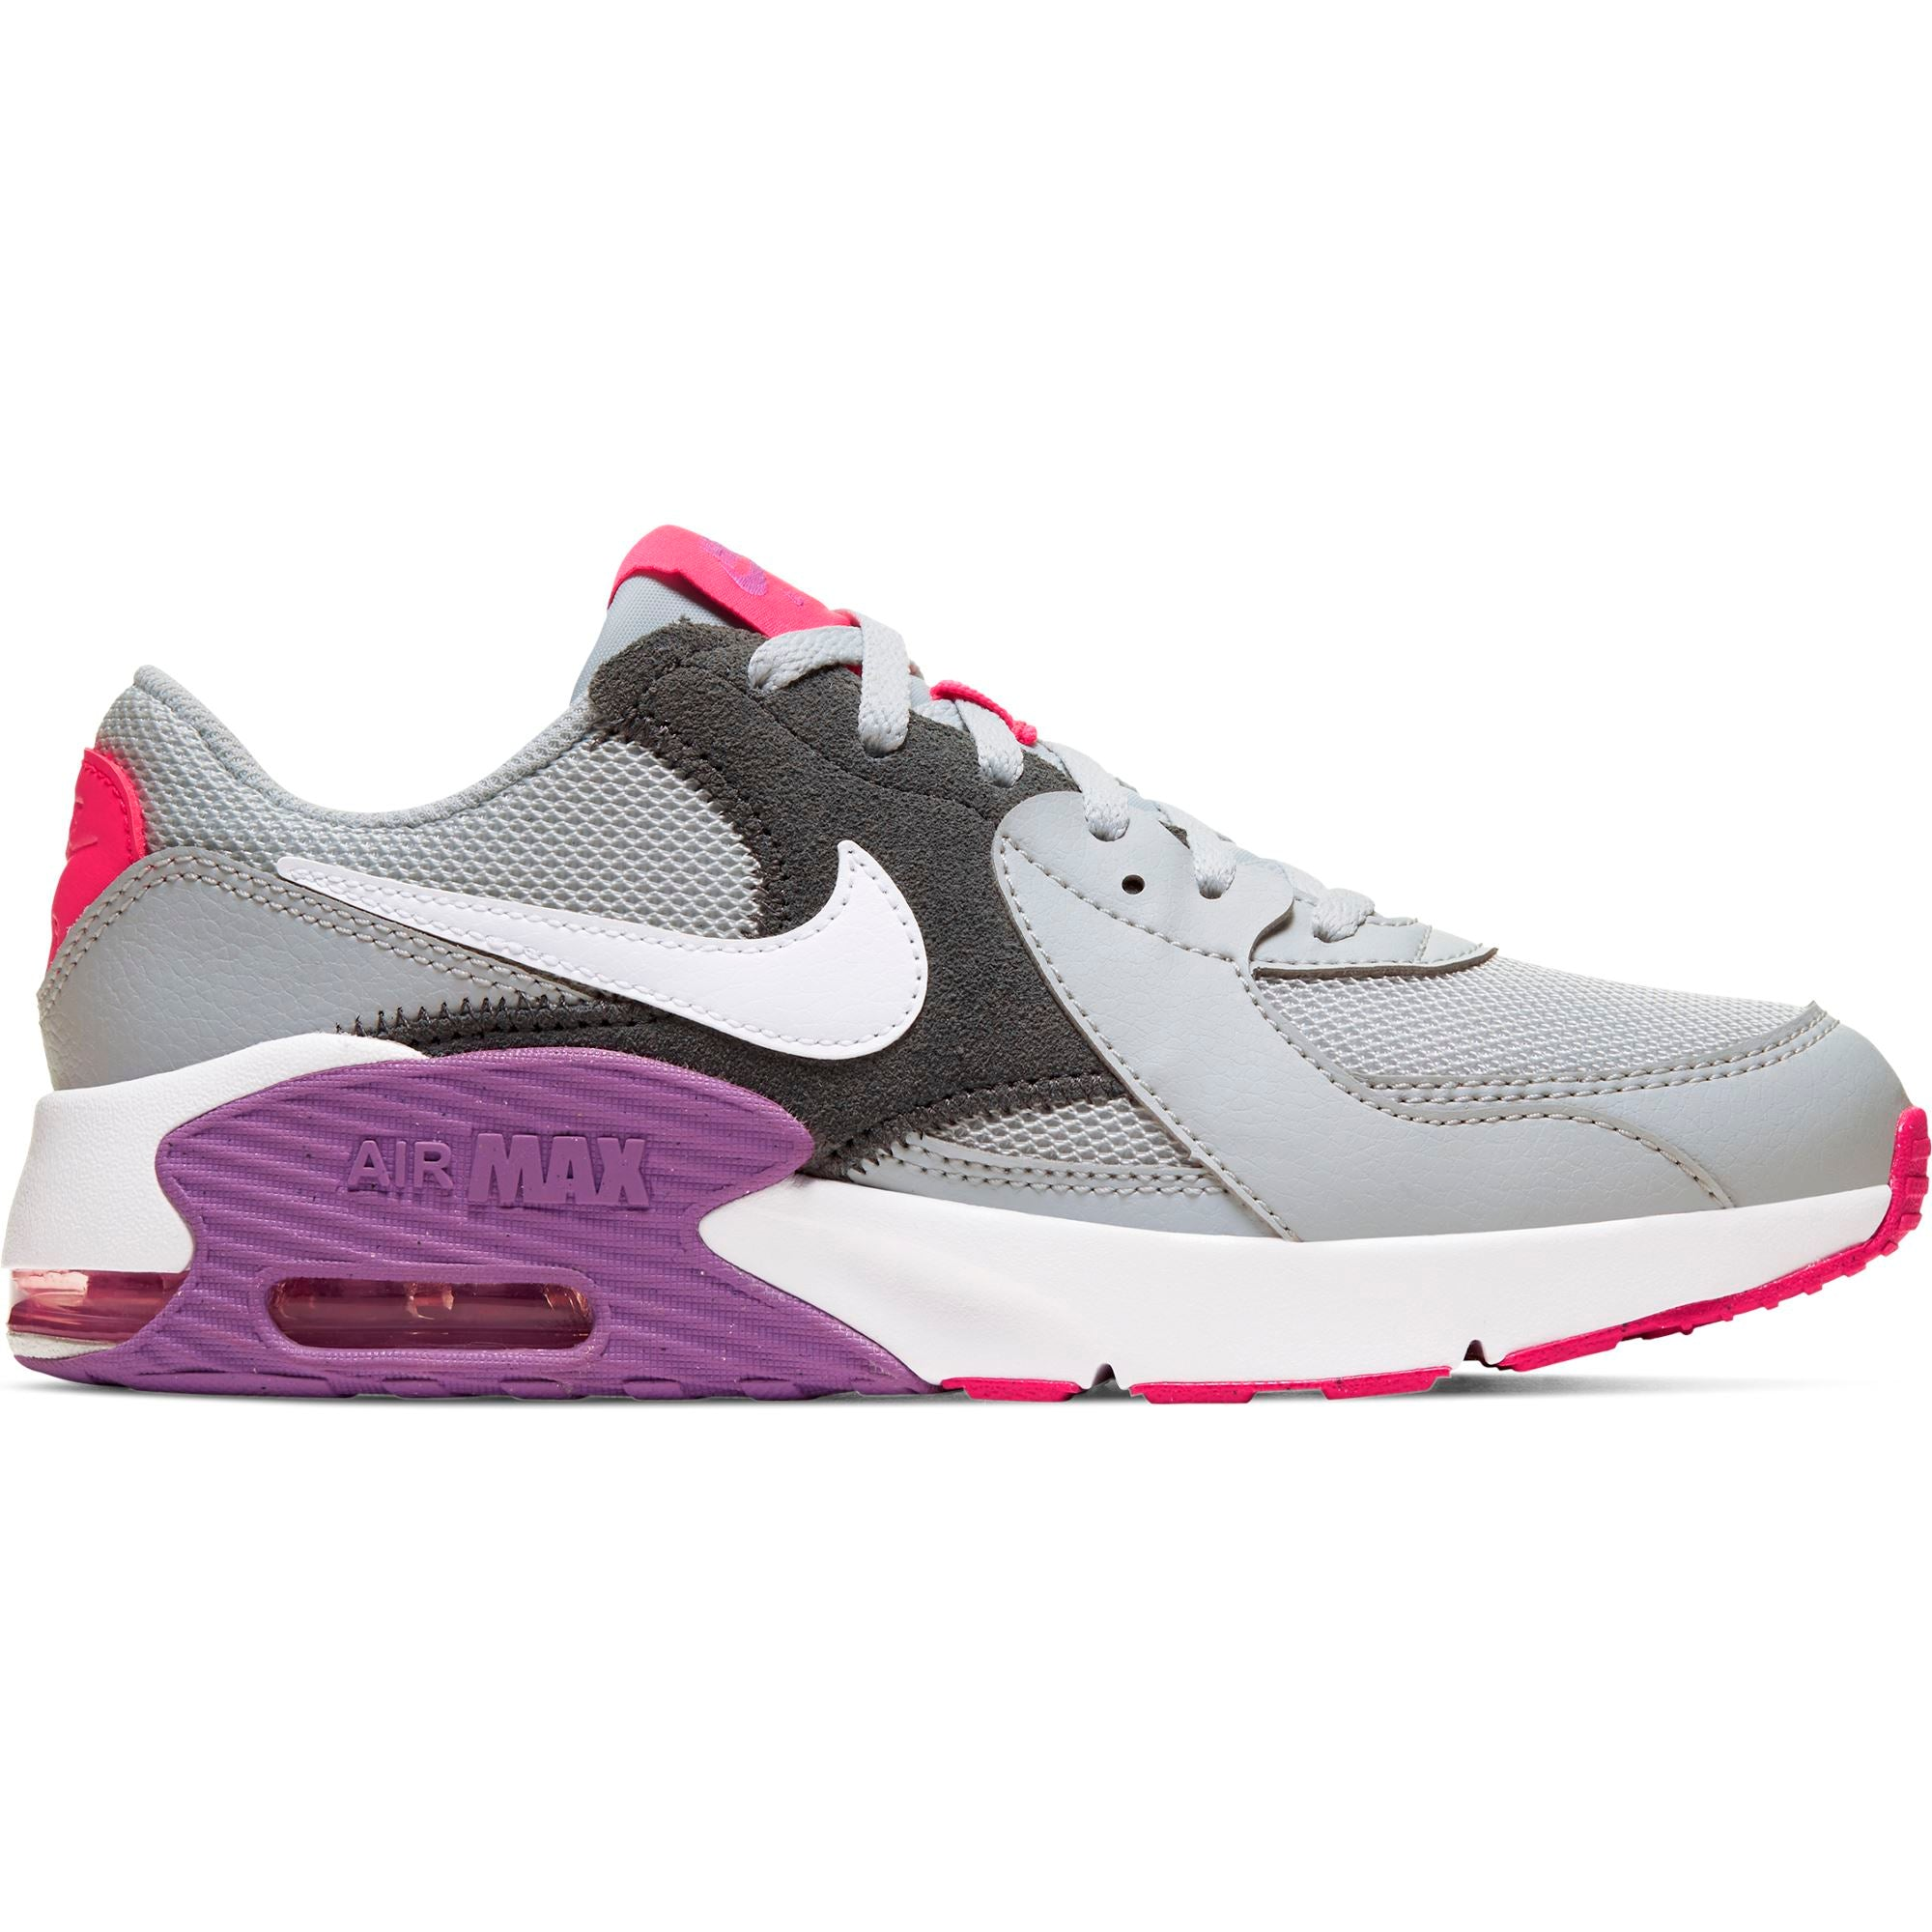 Nike Big Kids Air Max Excee - Grey Fog/White-Purple Nebula-Watermelon SP-Footwear-Kids Nike